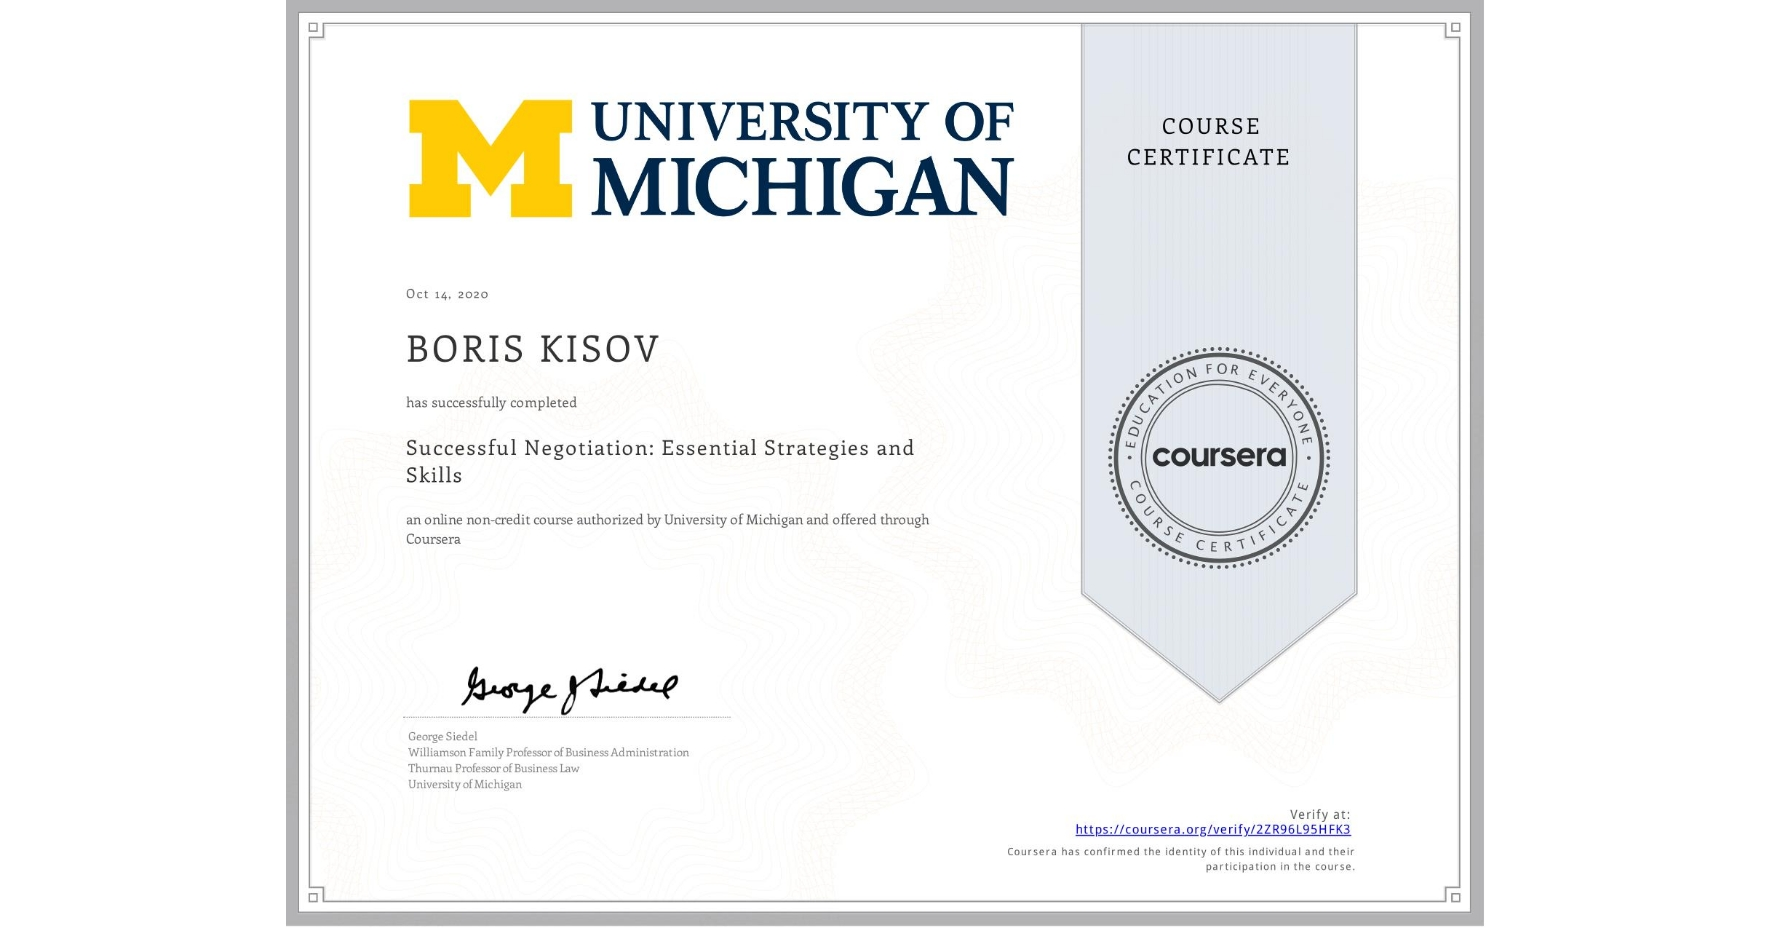 View certificate for BORIS KISOV, Successful Negotiation: Essential Strategies and Skills, an online non-credit course authorized by University of Michigan and offered through Coursera